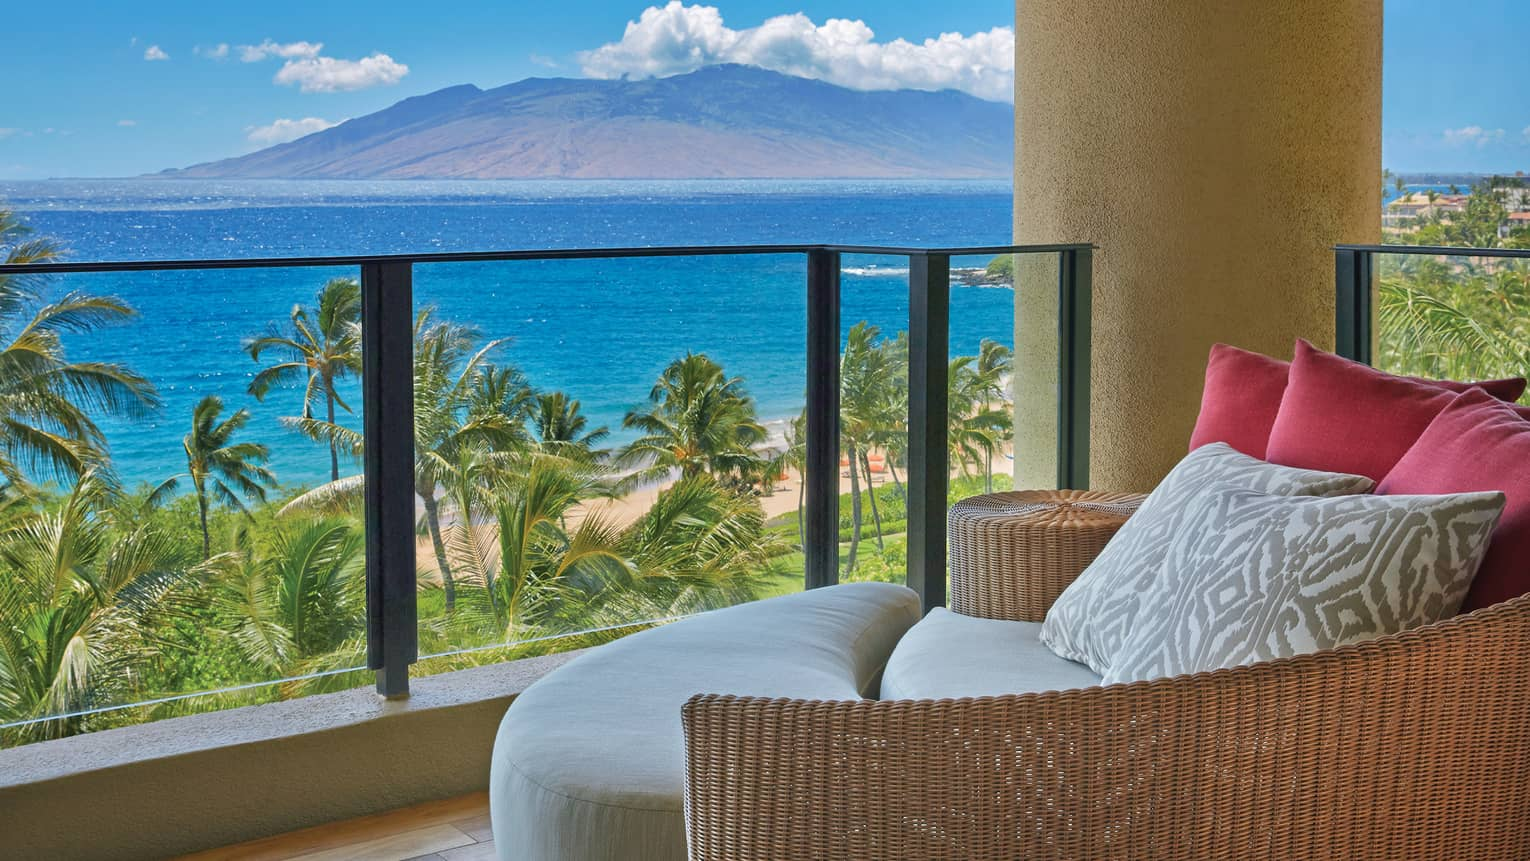 Maile Suite private terrace overlooking the ocean and the mountains